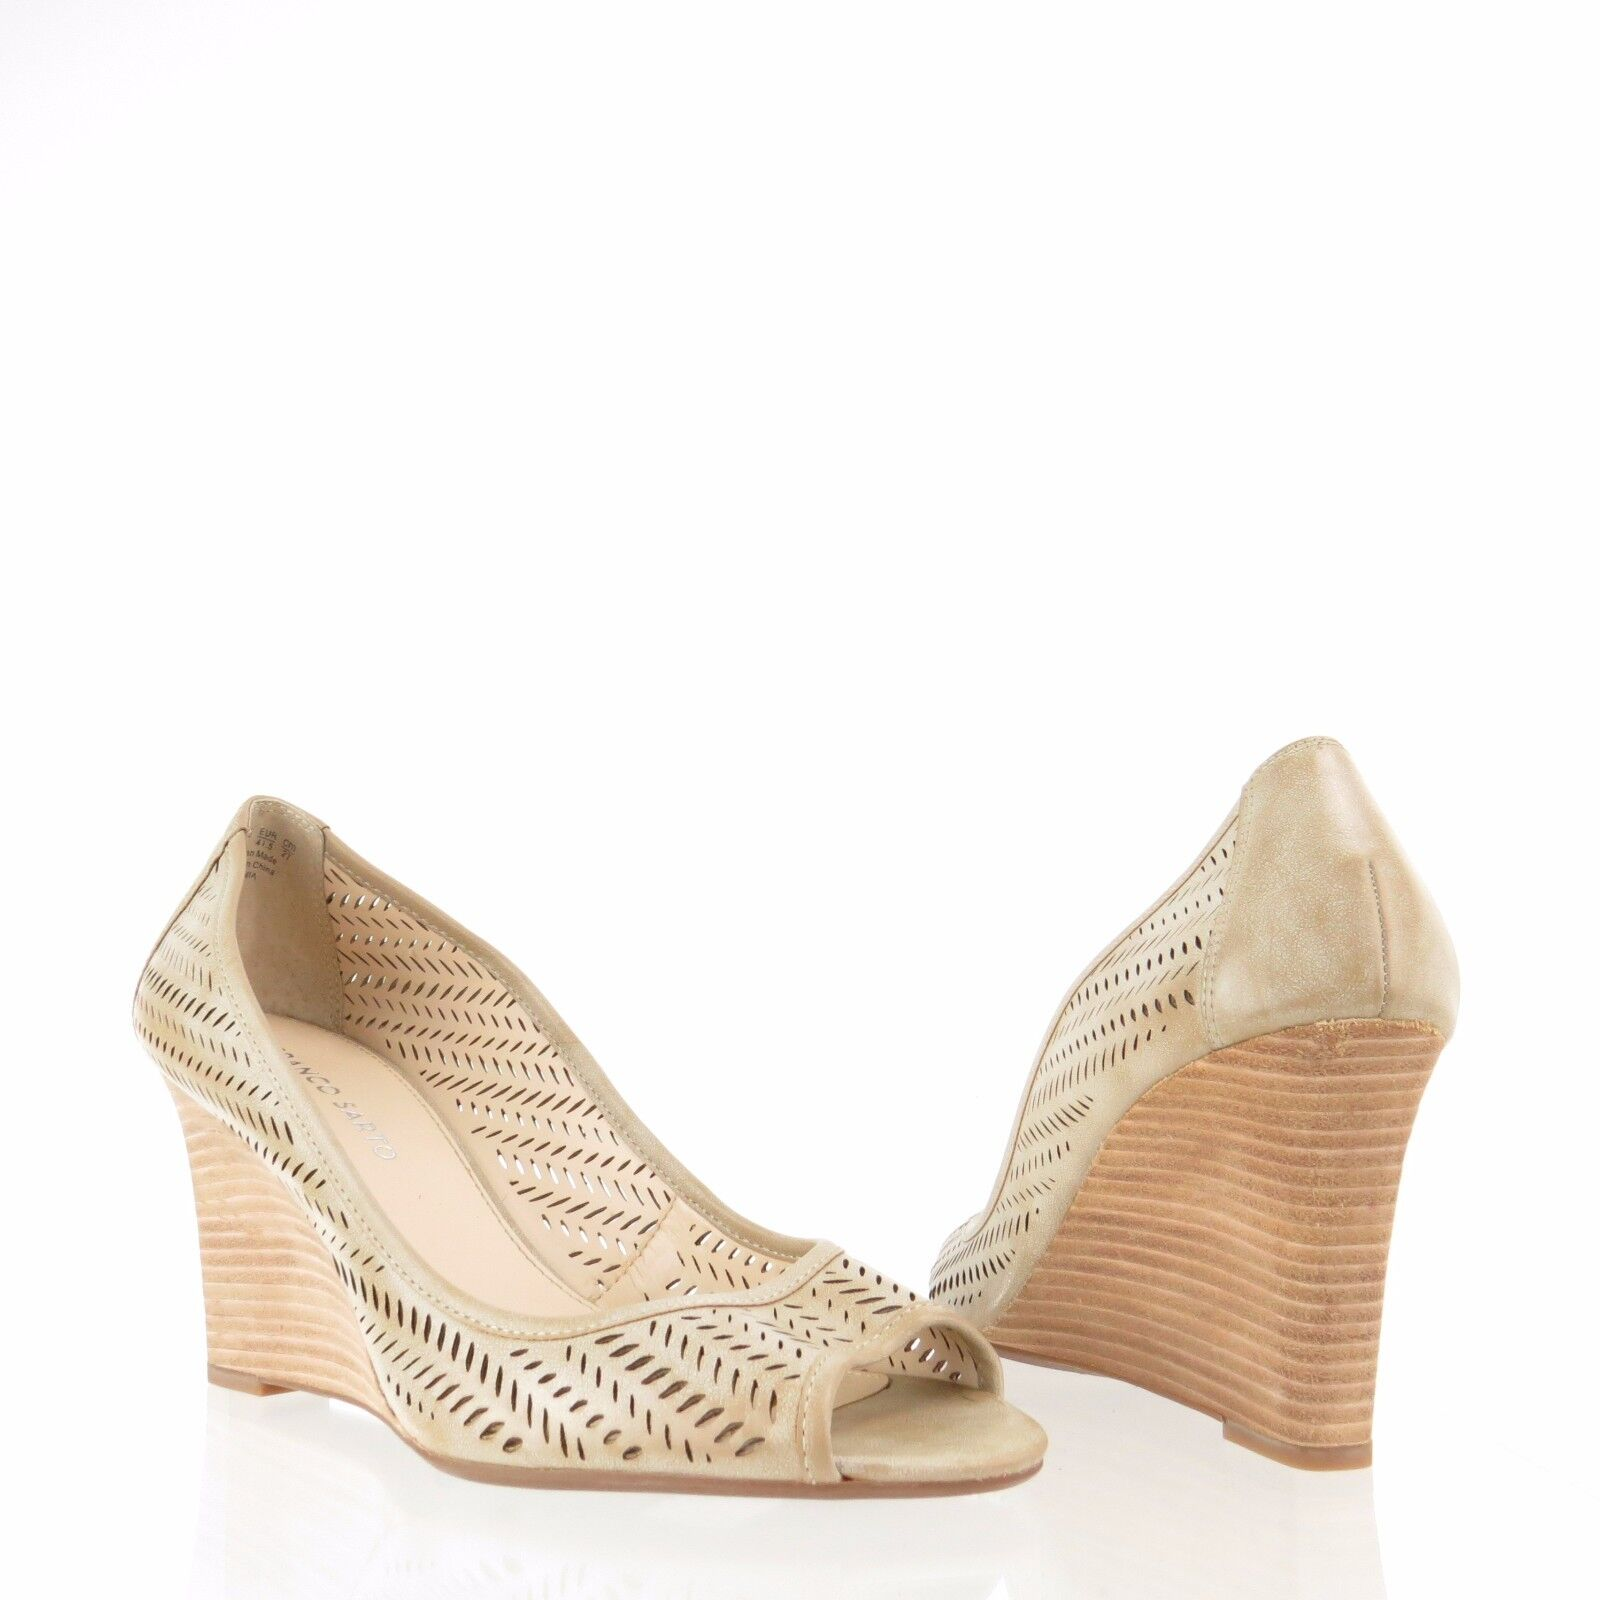 Women's Franco Sarto Jania shoes Beige Perforated Synthetic Wedges Size 10 M NEW